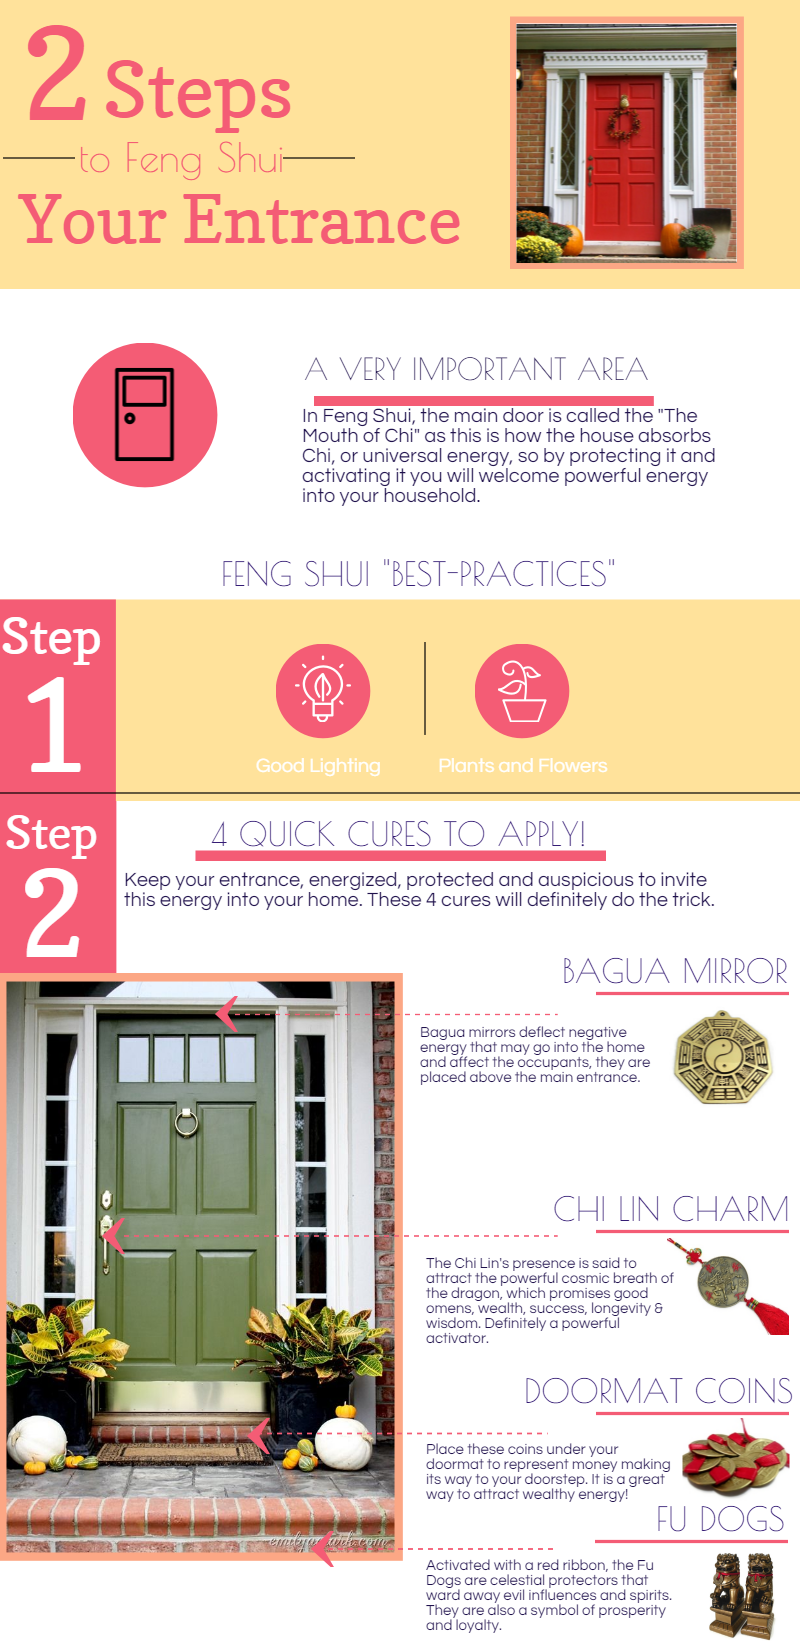 fun feng shui infographic to activate your entrance in 2 easy steps and in 5 minutes feng shui quick spells